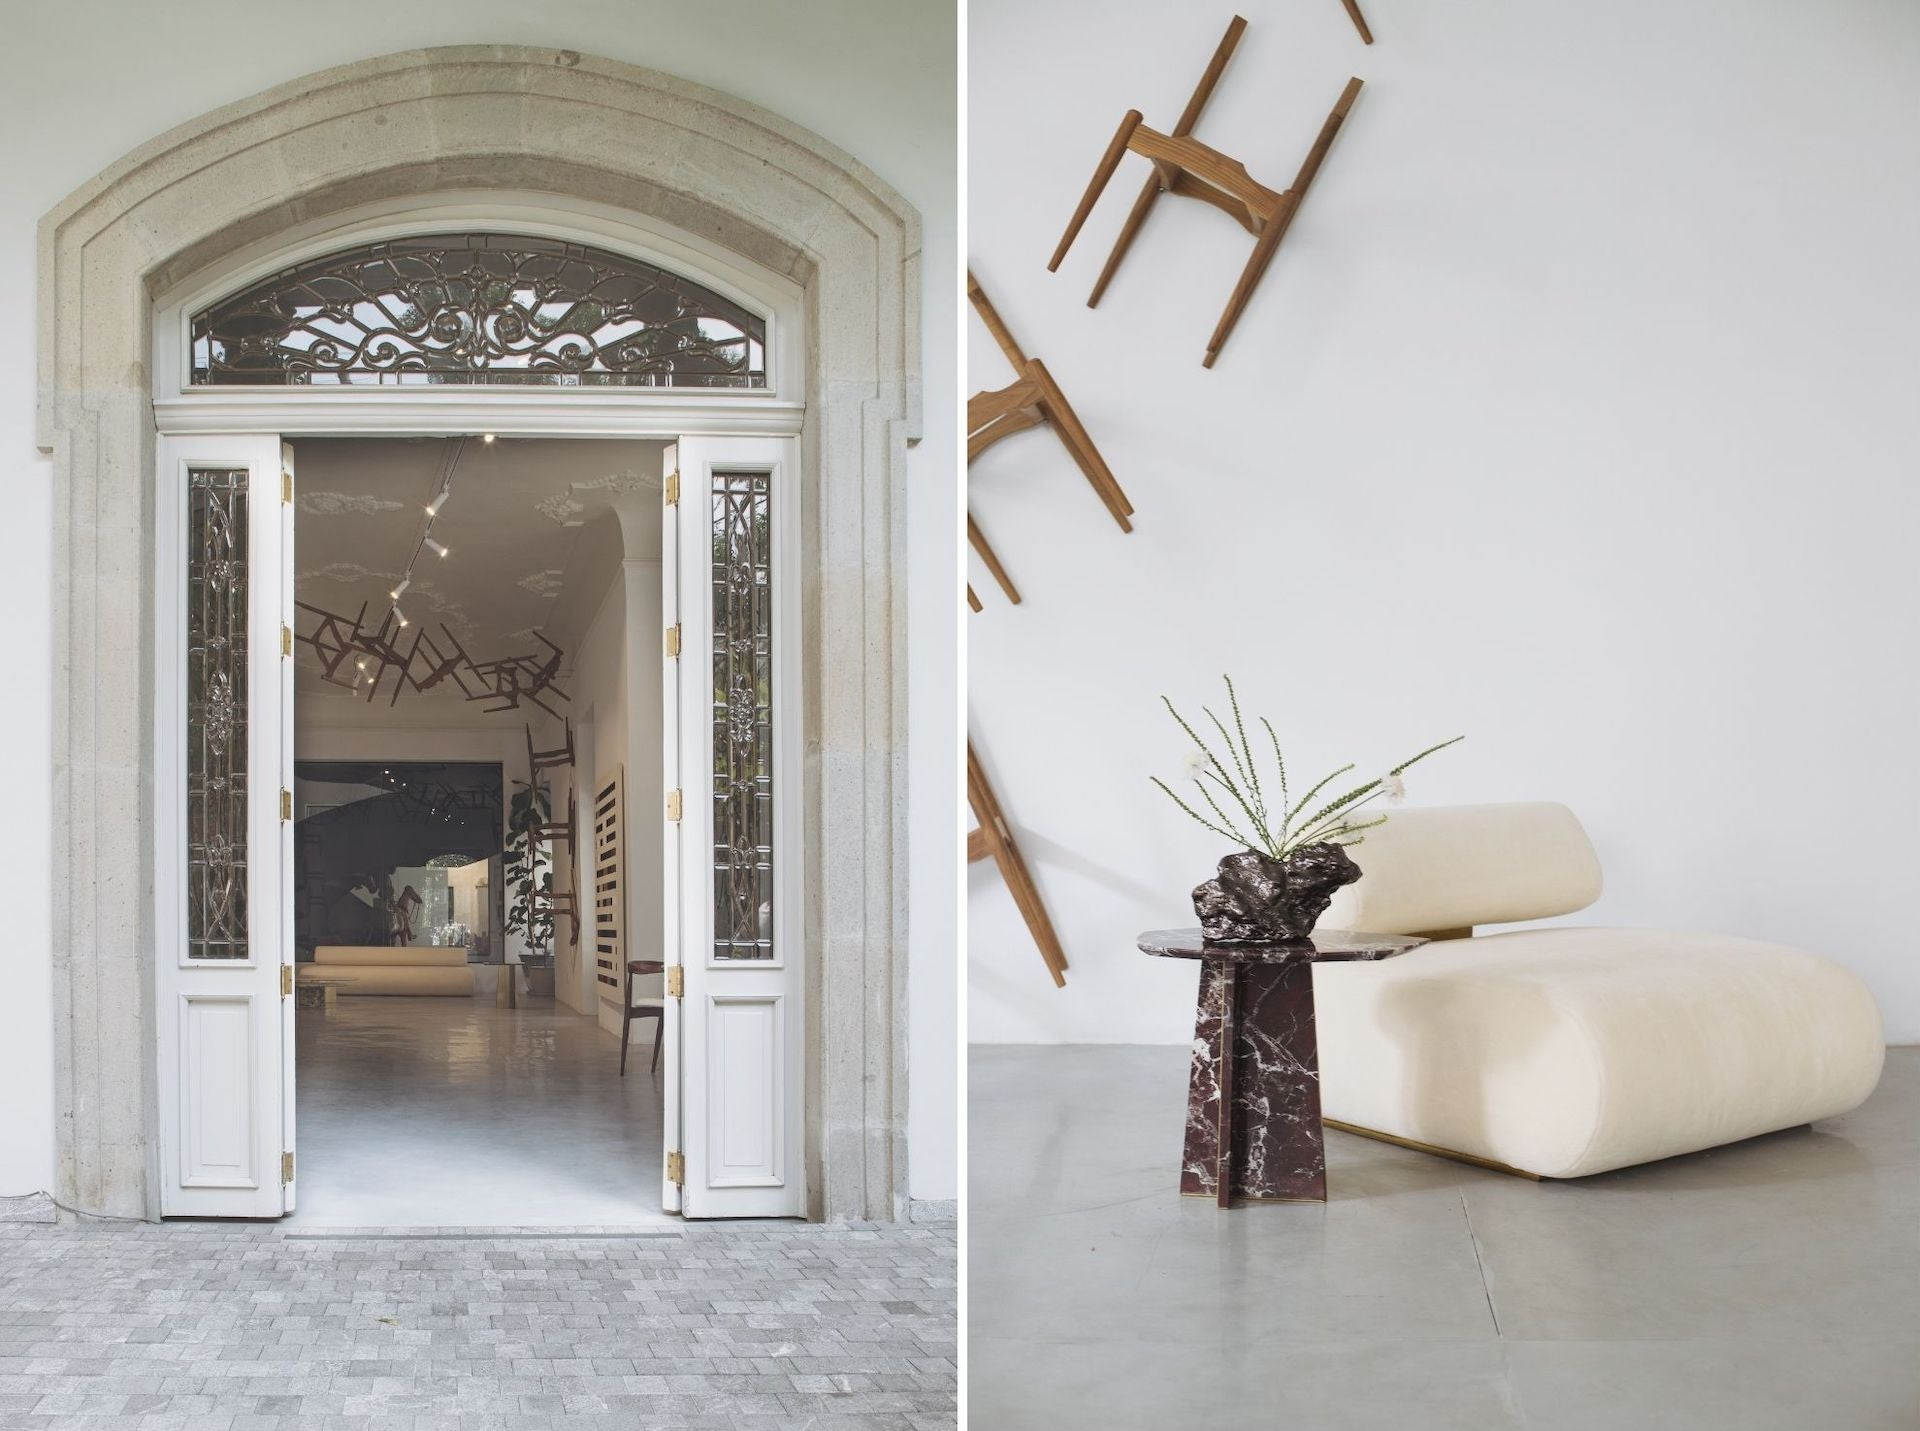 Atra Collective's new Mexico City space, set in the historic Casa Basalta; Images © ATRA